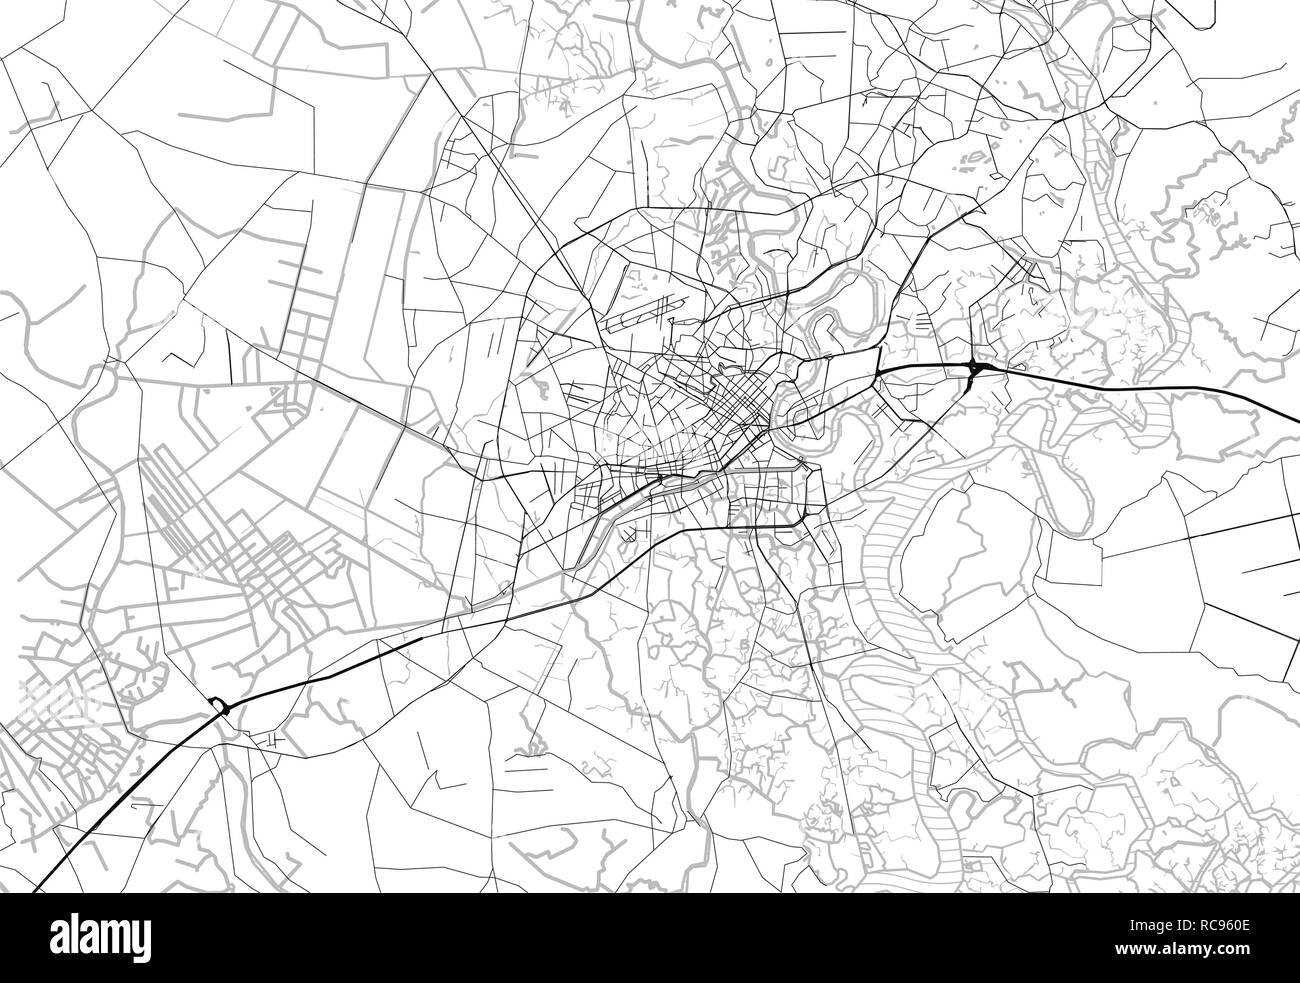 Area map of Ho Chi Minh City, Vietnam. This artmap of Ho Chi Minh City contains geography lines for land mass, water, major and minor roads. - Stock Vector